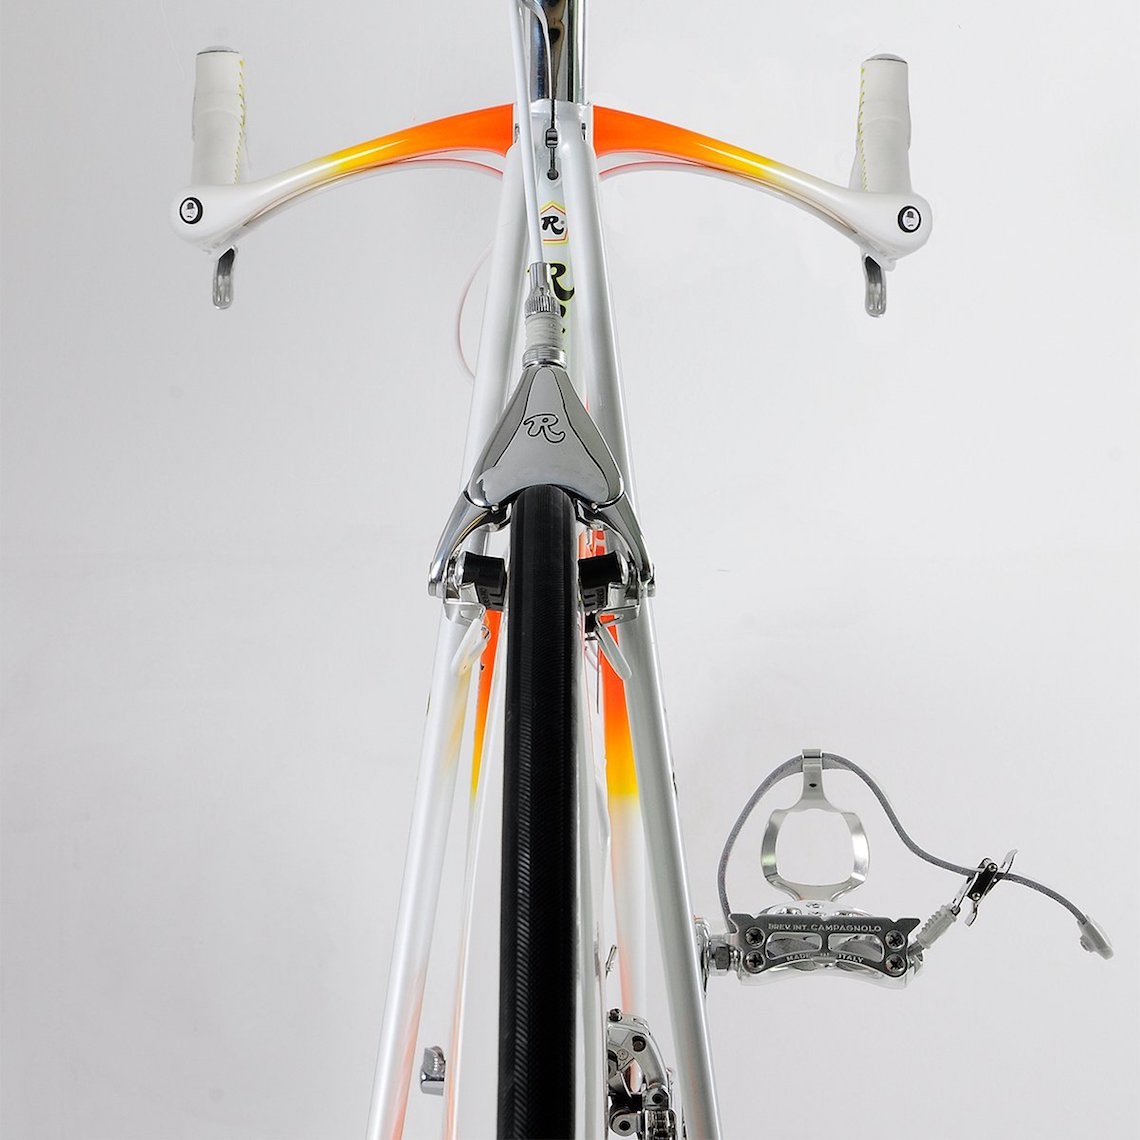 Rossin Futura CX4_Vintage_Luxury_Bicycle_9